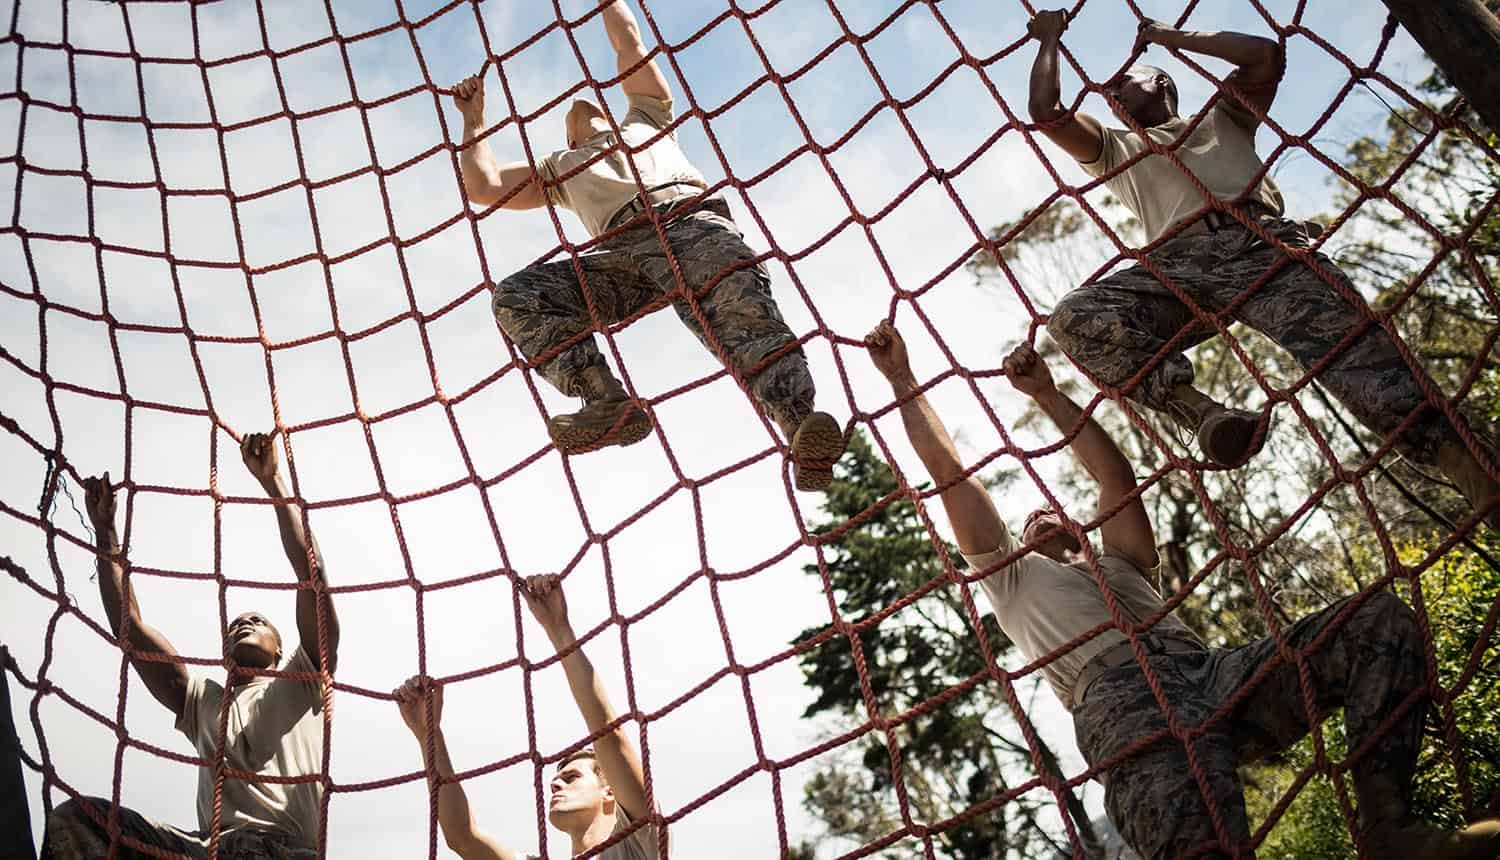 Military soldiers climbing rope during obstacle course showing defense contractors problem with CMMC requirements